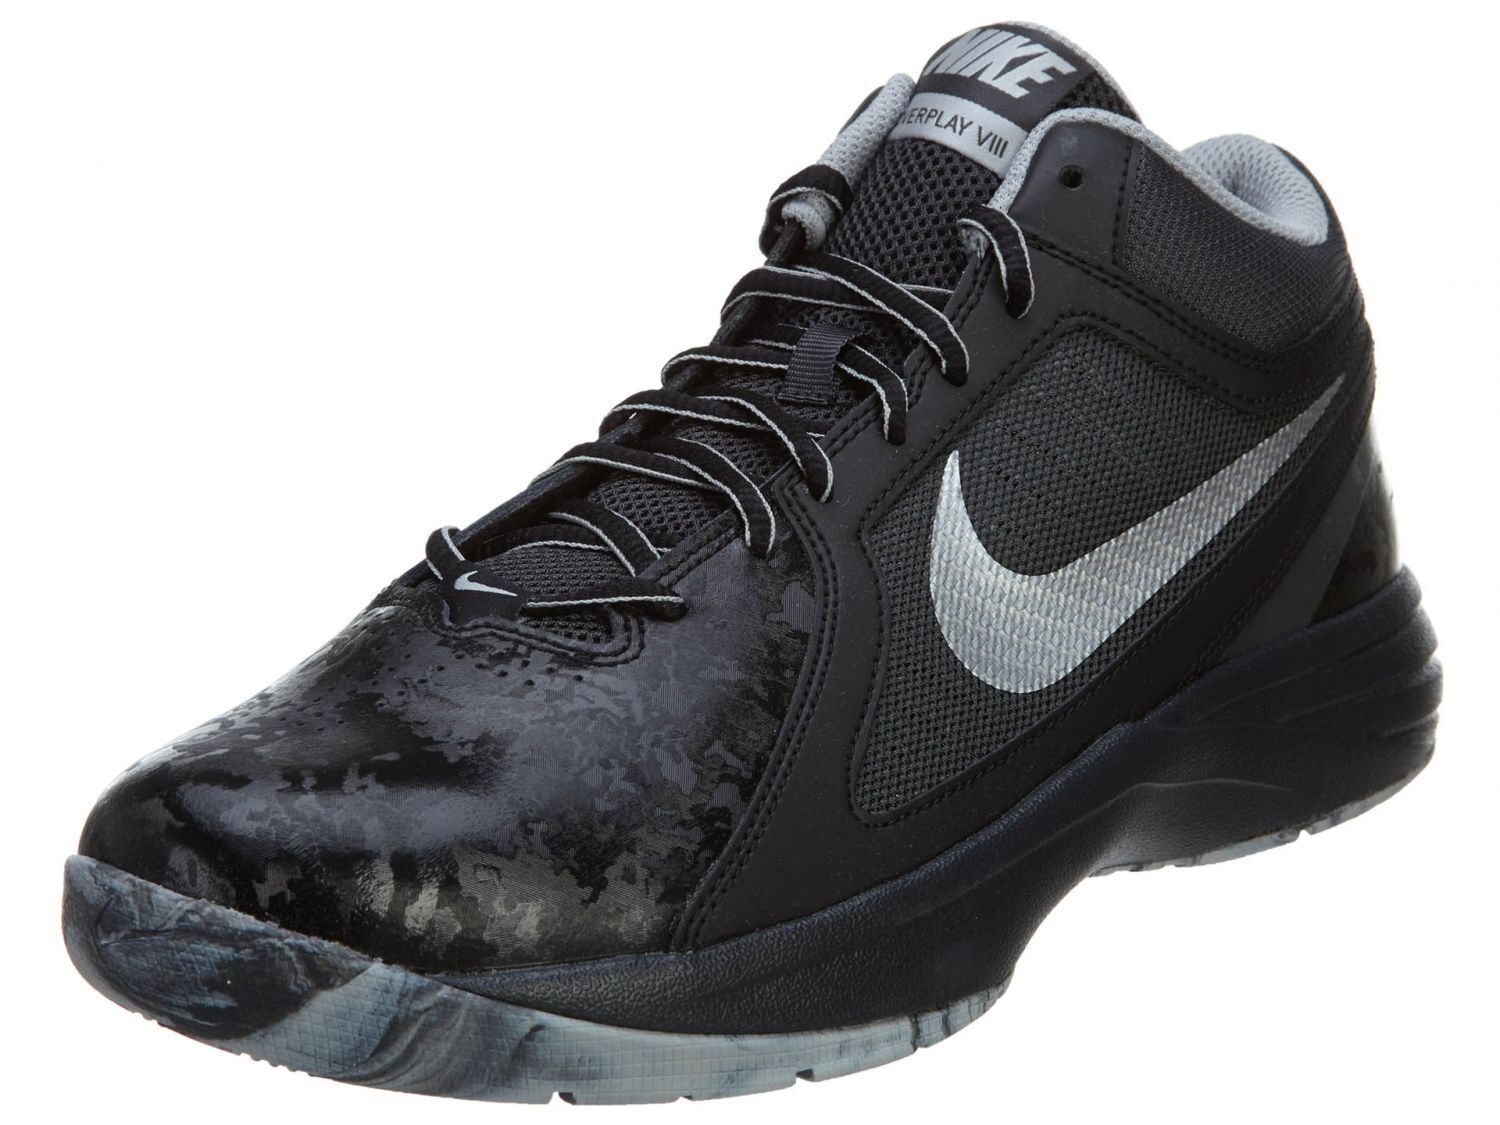 NIKE THE OVERPLAY VIII HI SNEAKERS MEN SHOES BLACK/WHITE 637382-015 SIZE 7 NEW